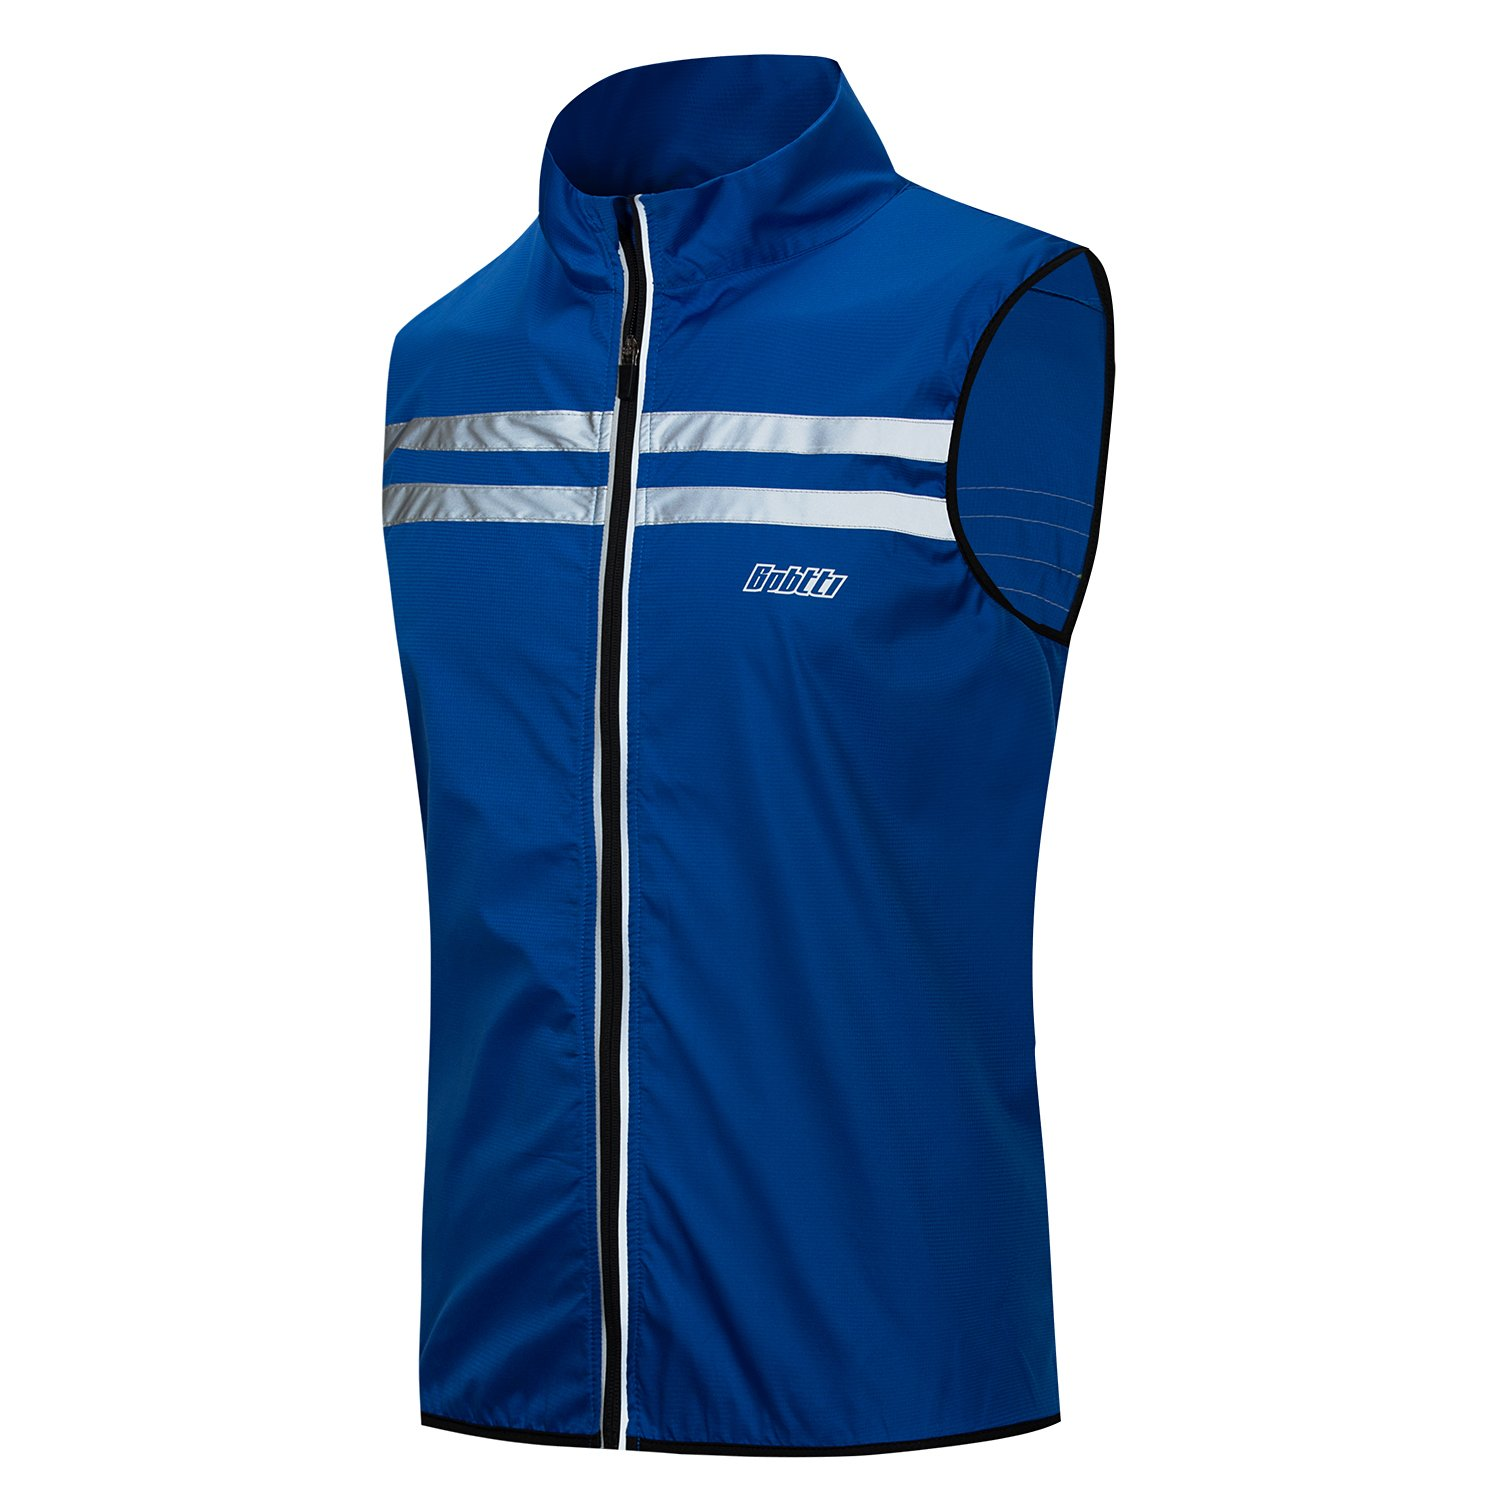 Bpbtti Men's Hi-Viz Safety Running Cycling Vest(Large - Chest 40-42 Royal Blue)